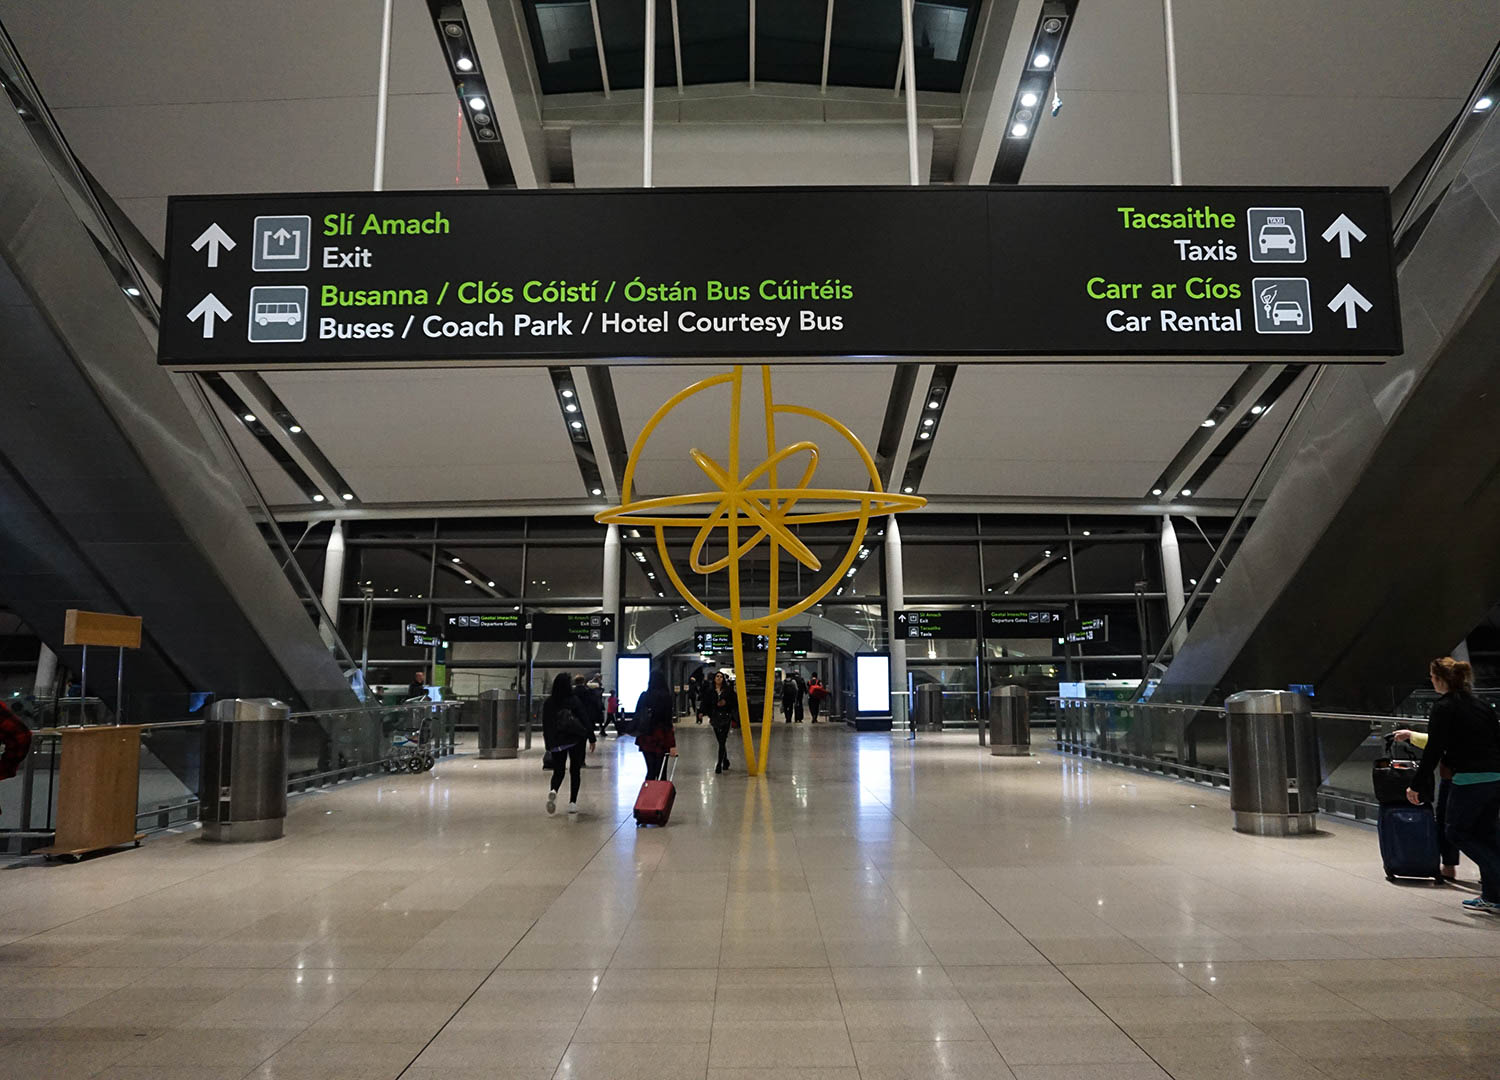 Directions to Bus Terminals at Dublin Airport for Travel to and from Dublin Airport in Ireland/Northern Ireland